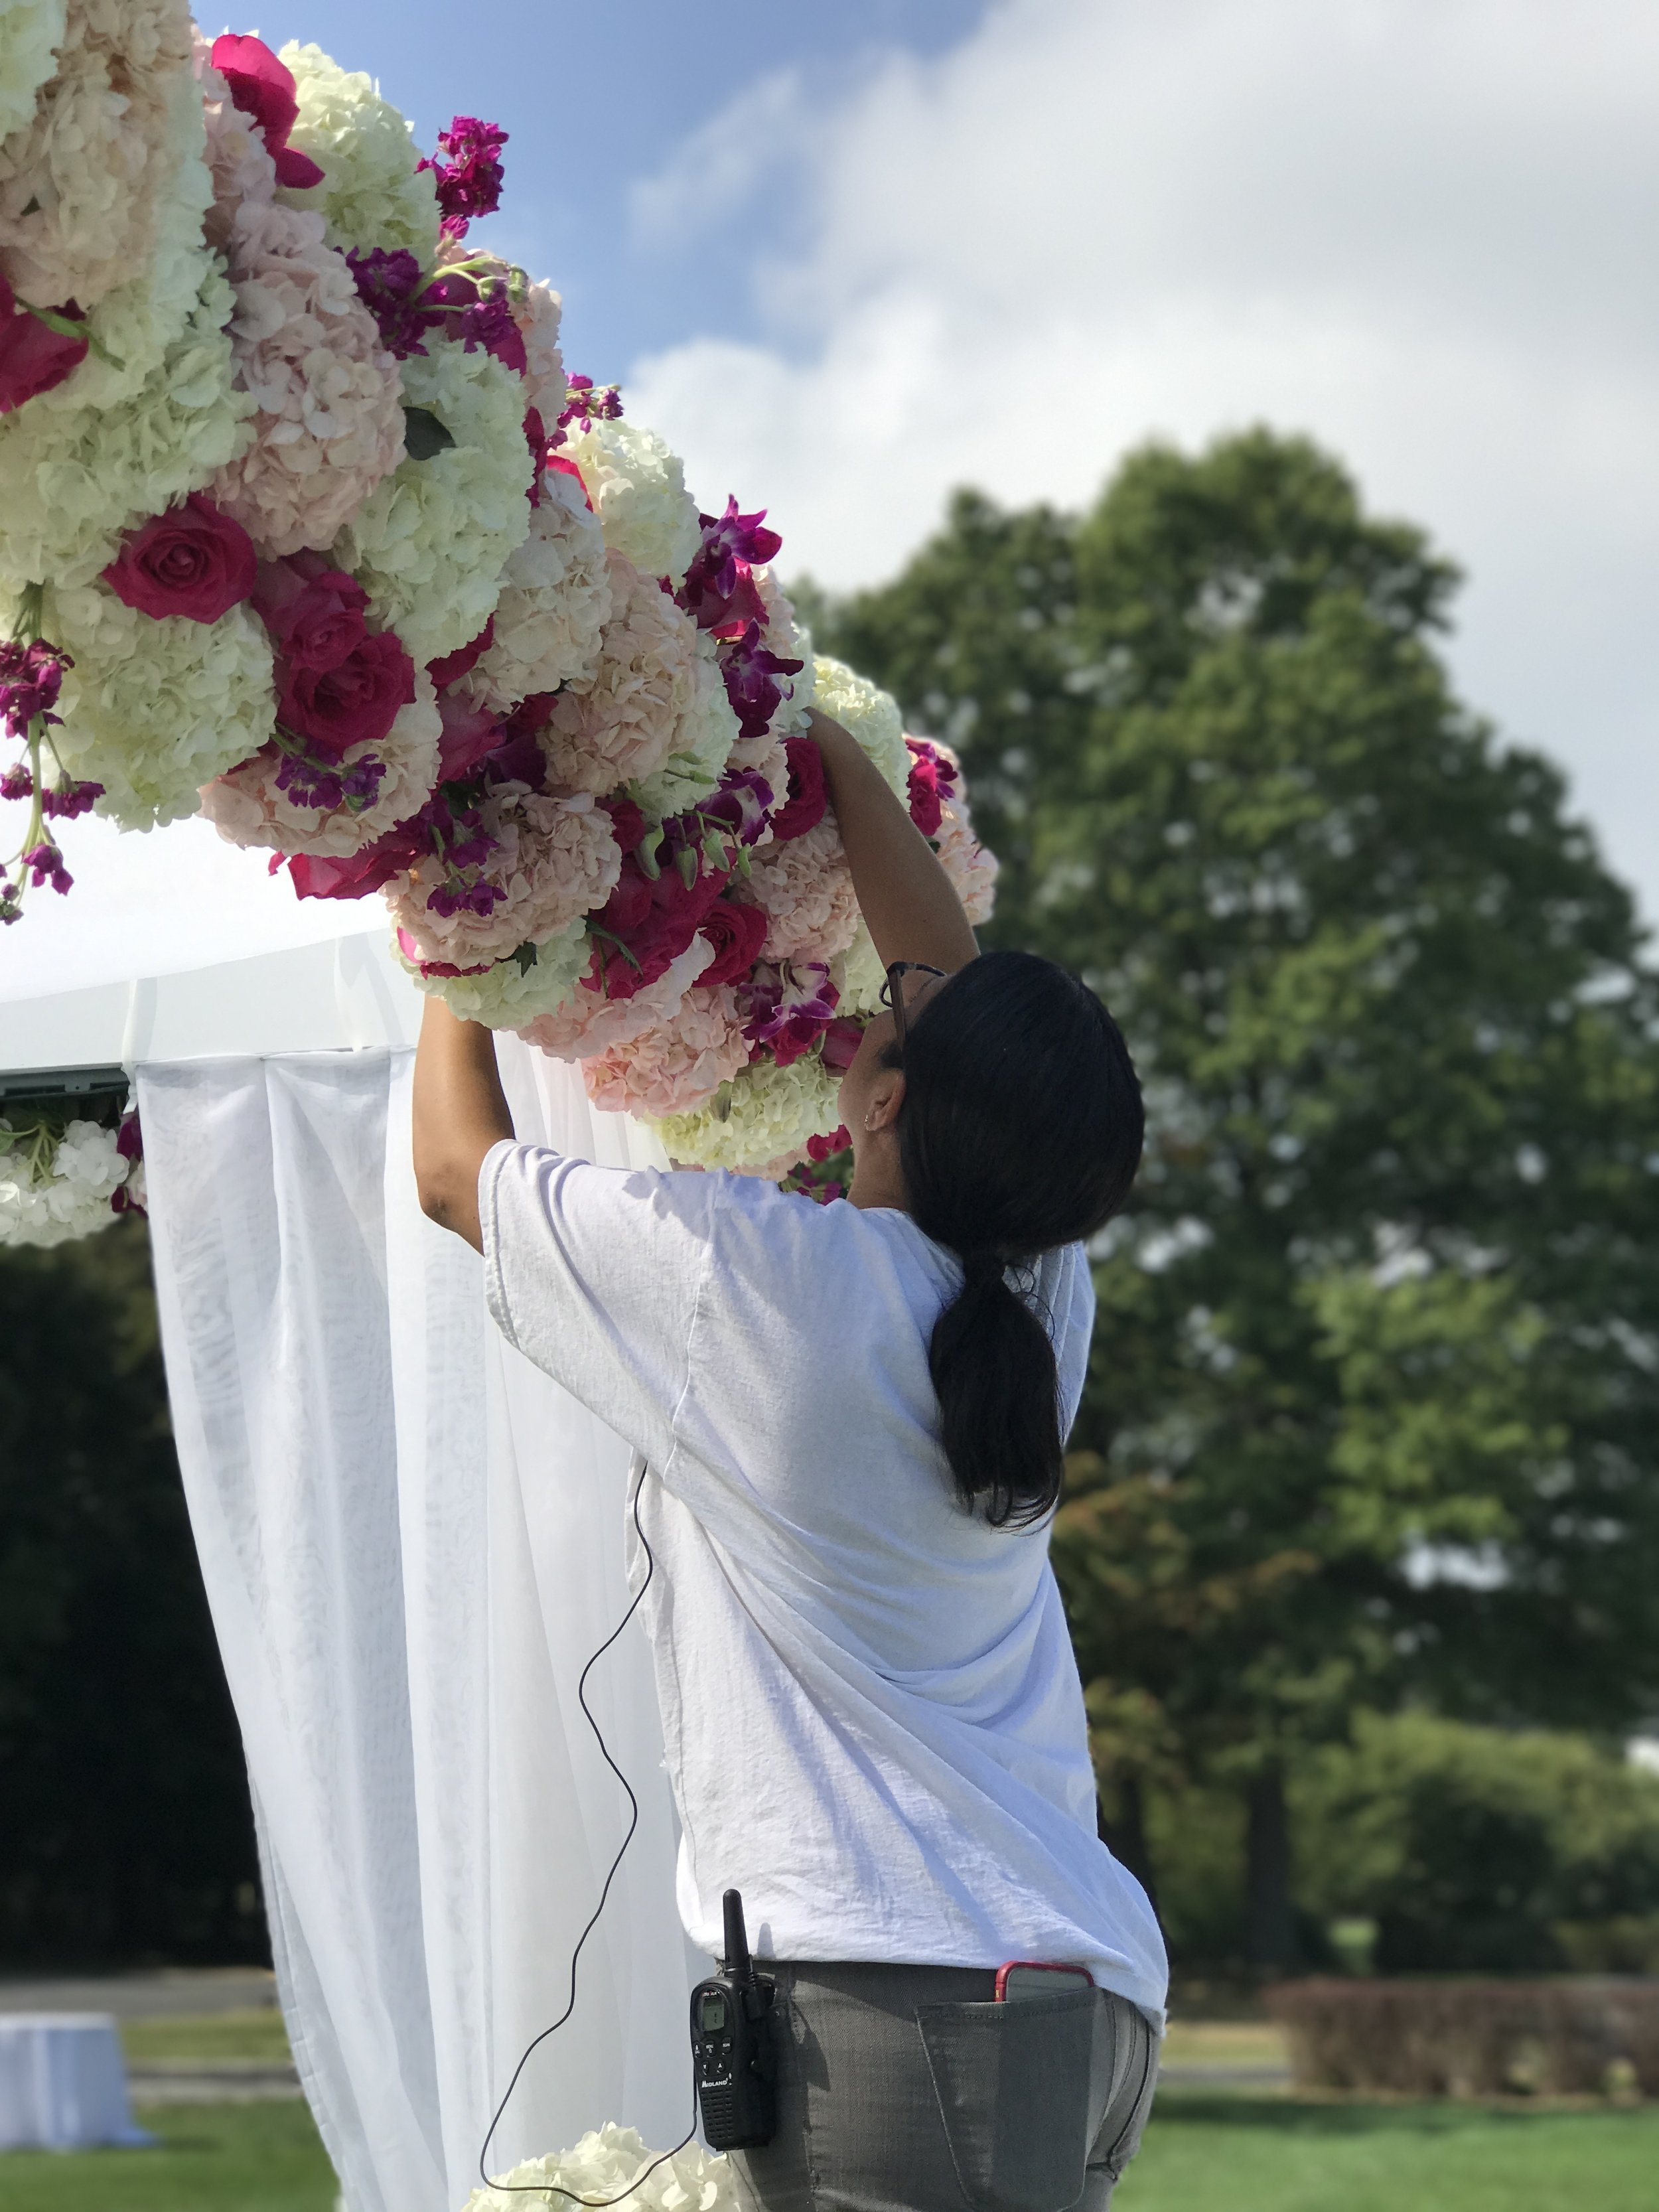 "This is me! I needed a tall ladder as I am somewhat short (4'9"" to be exact) lol. We were adding flowers and adjusting."